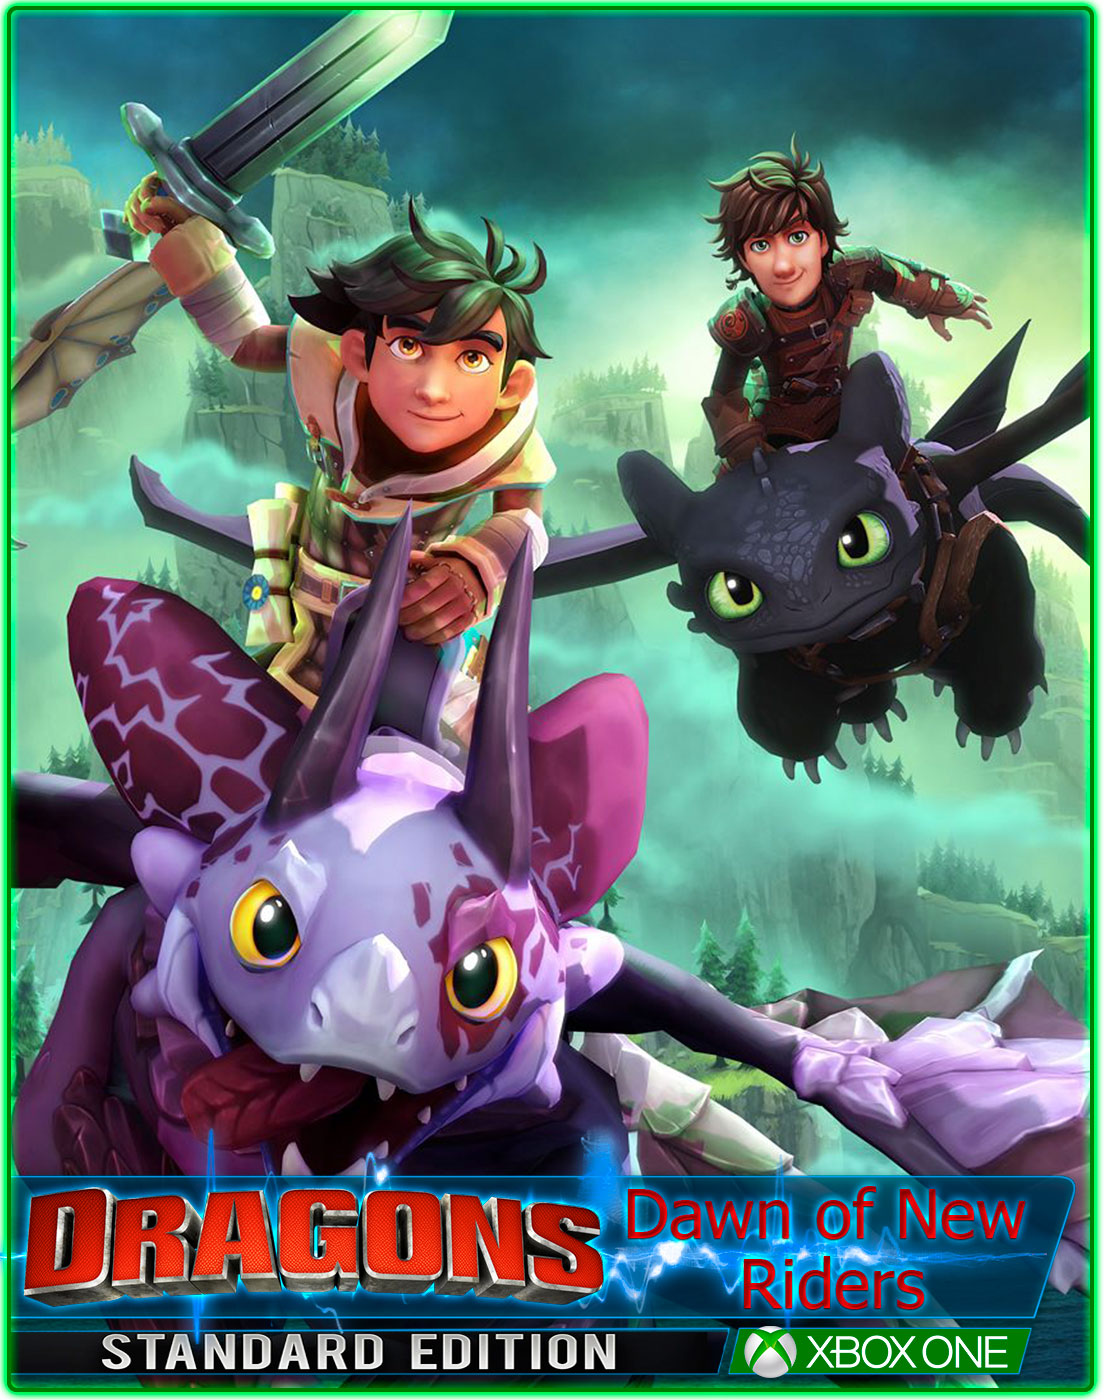 DreamWorks Dragons Dawn of New Riders(XBOX ONE) 2019